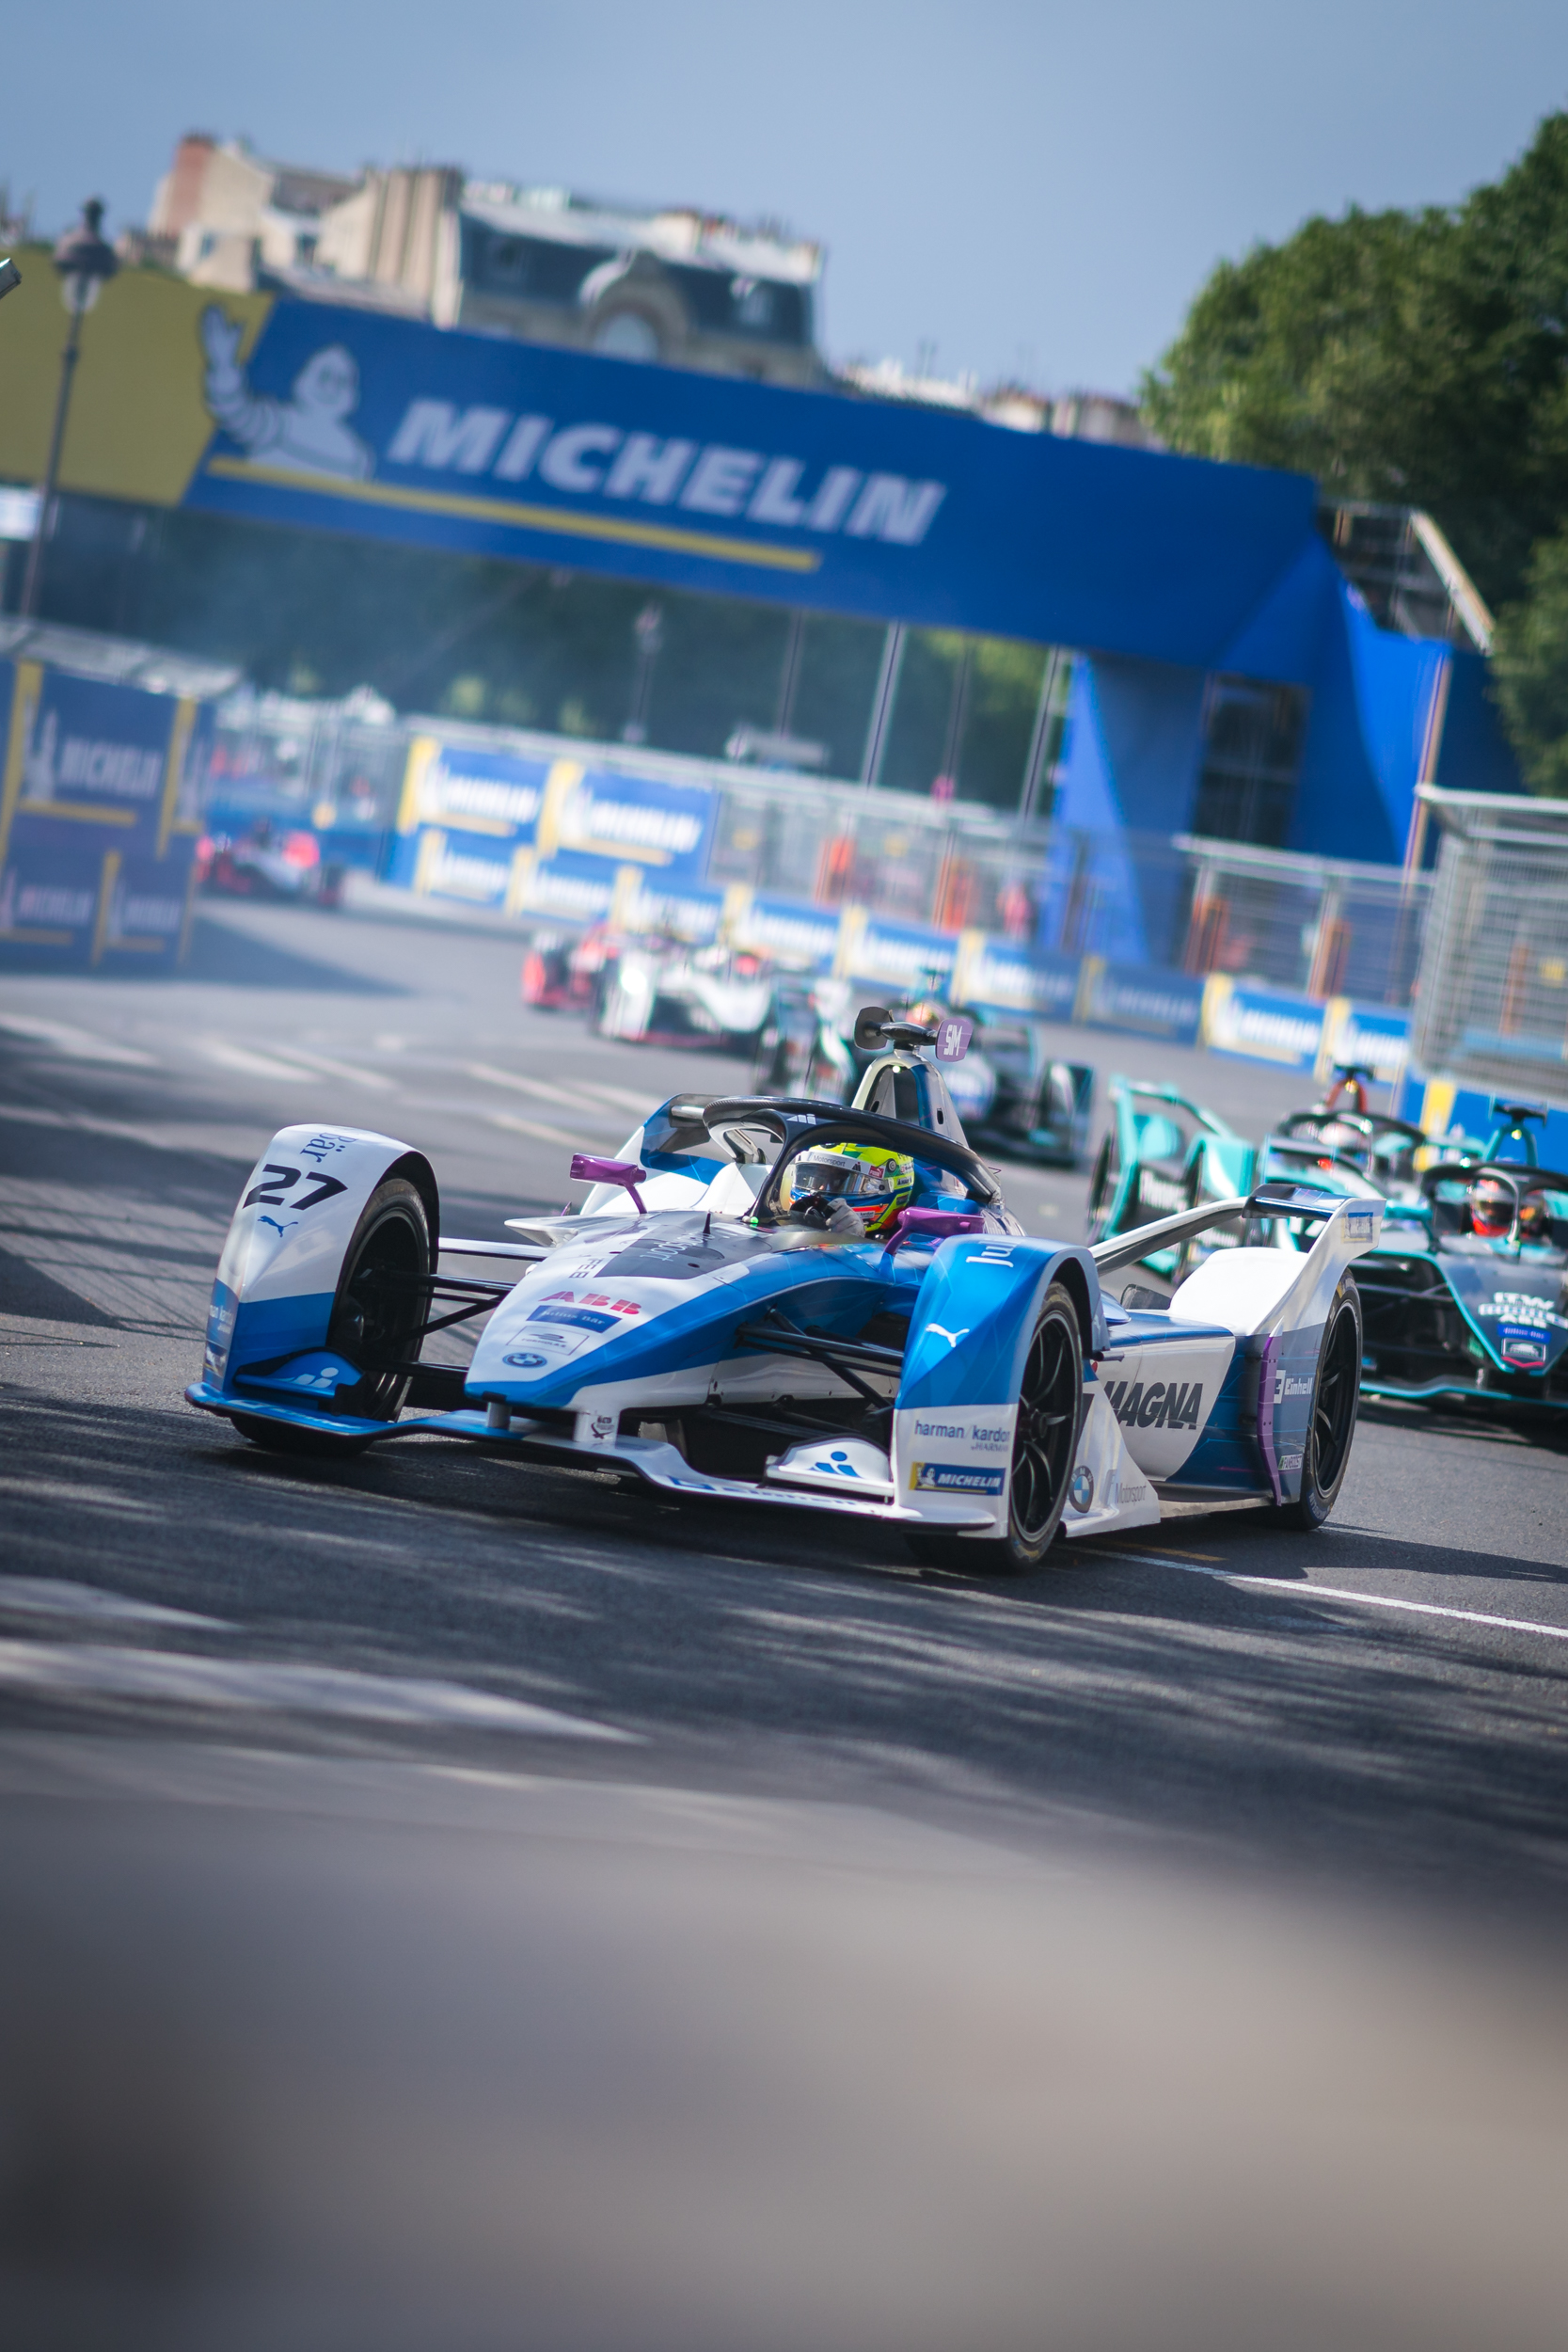 BMW i_Formula E Paris 2019_26&27-04-19_Florian Leger_SHARE & DARE_HD_N°-358.jpg